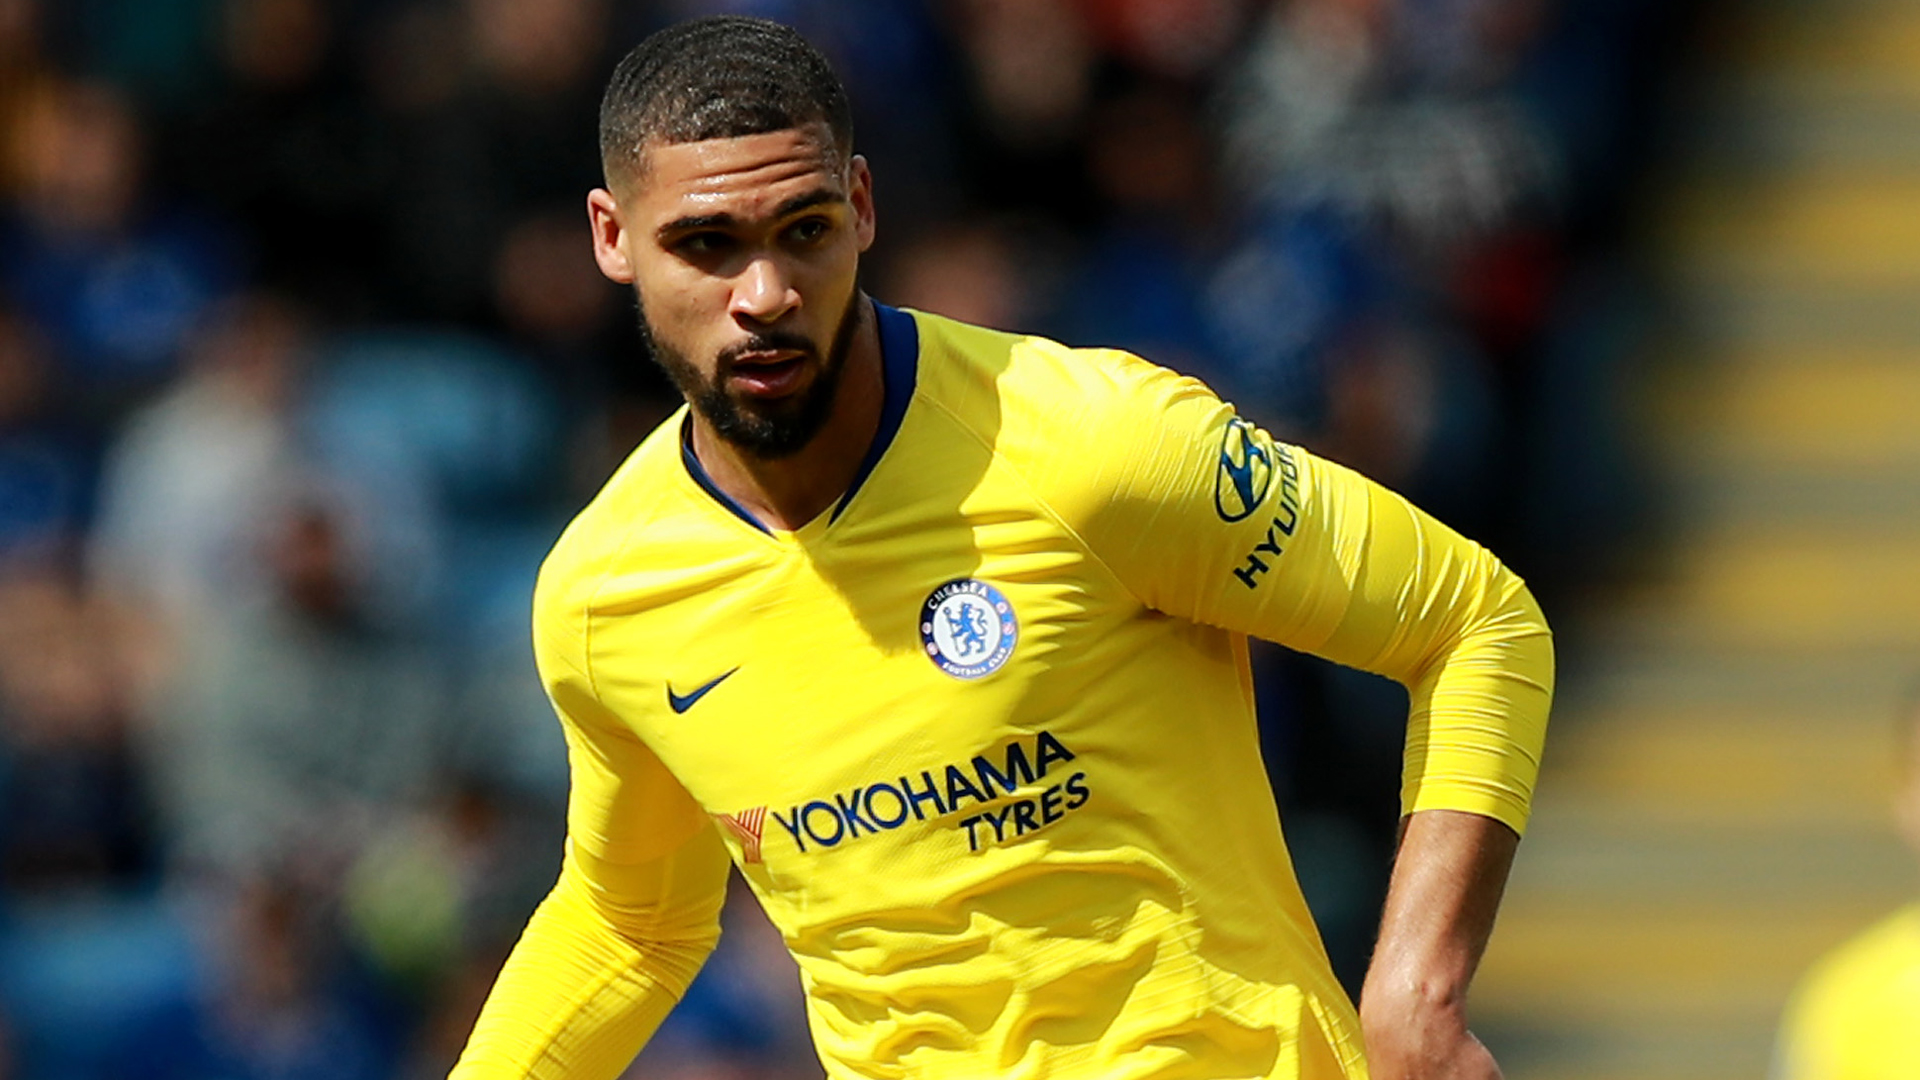 Chelsea midfielder Ruben Loftus-Cheek hurt his ankle in a comfortable friendly victory over New England Revolution.